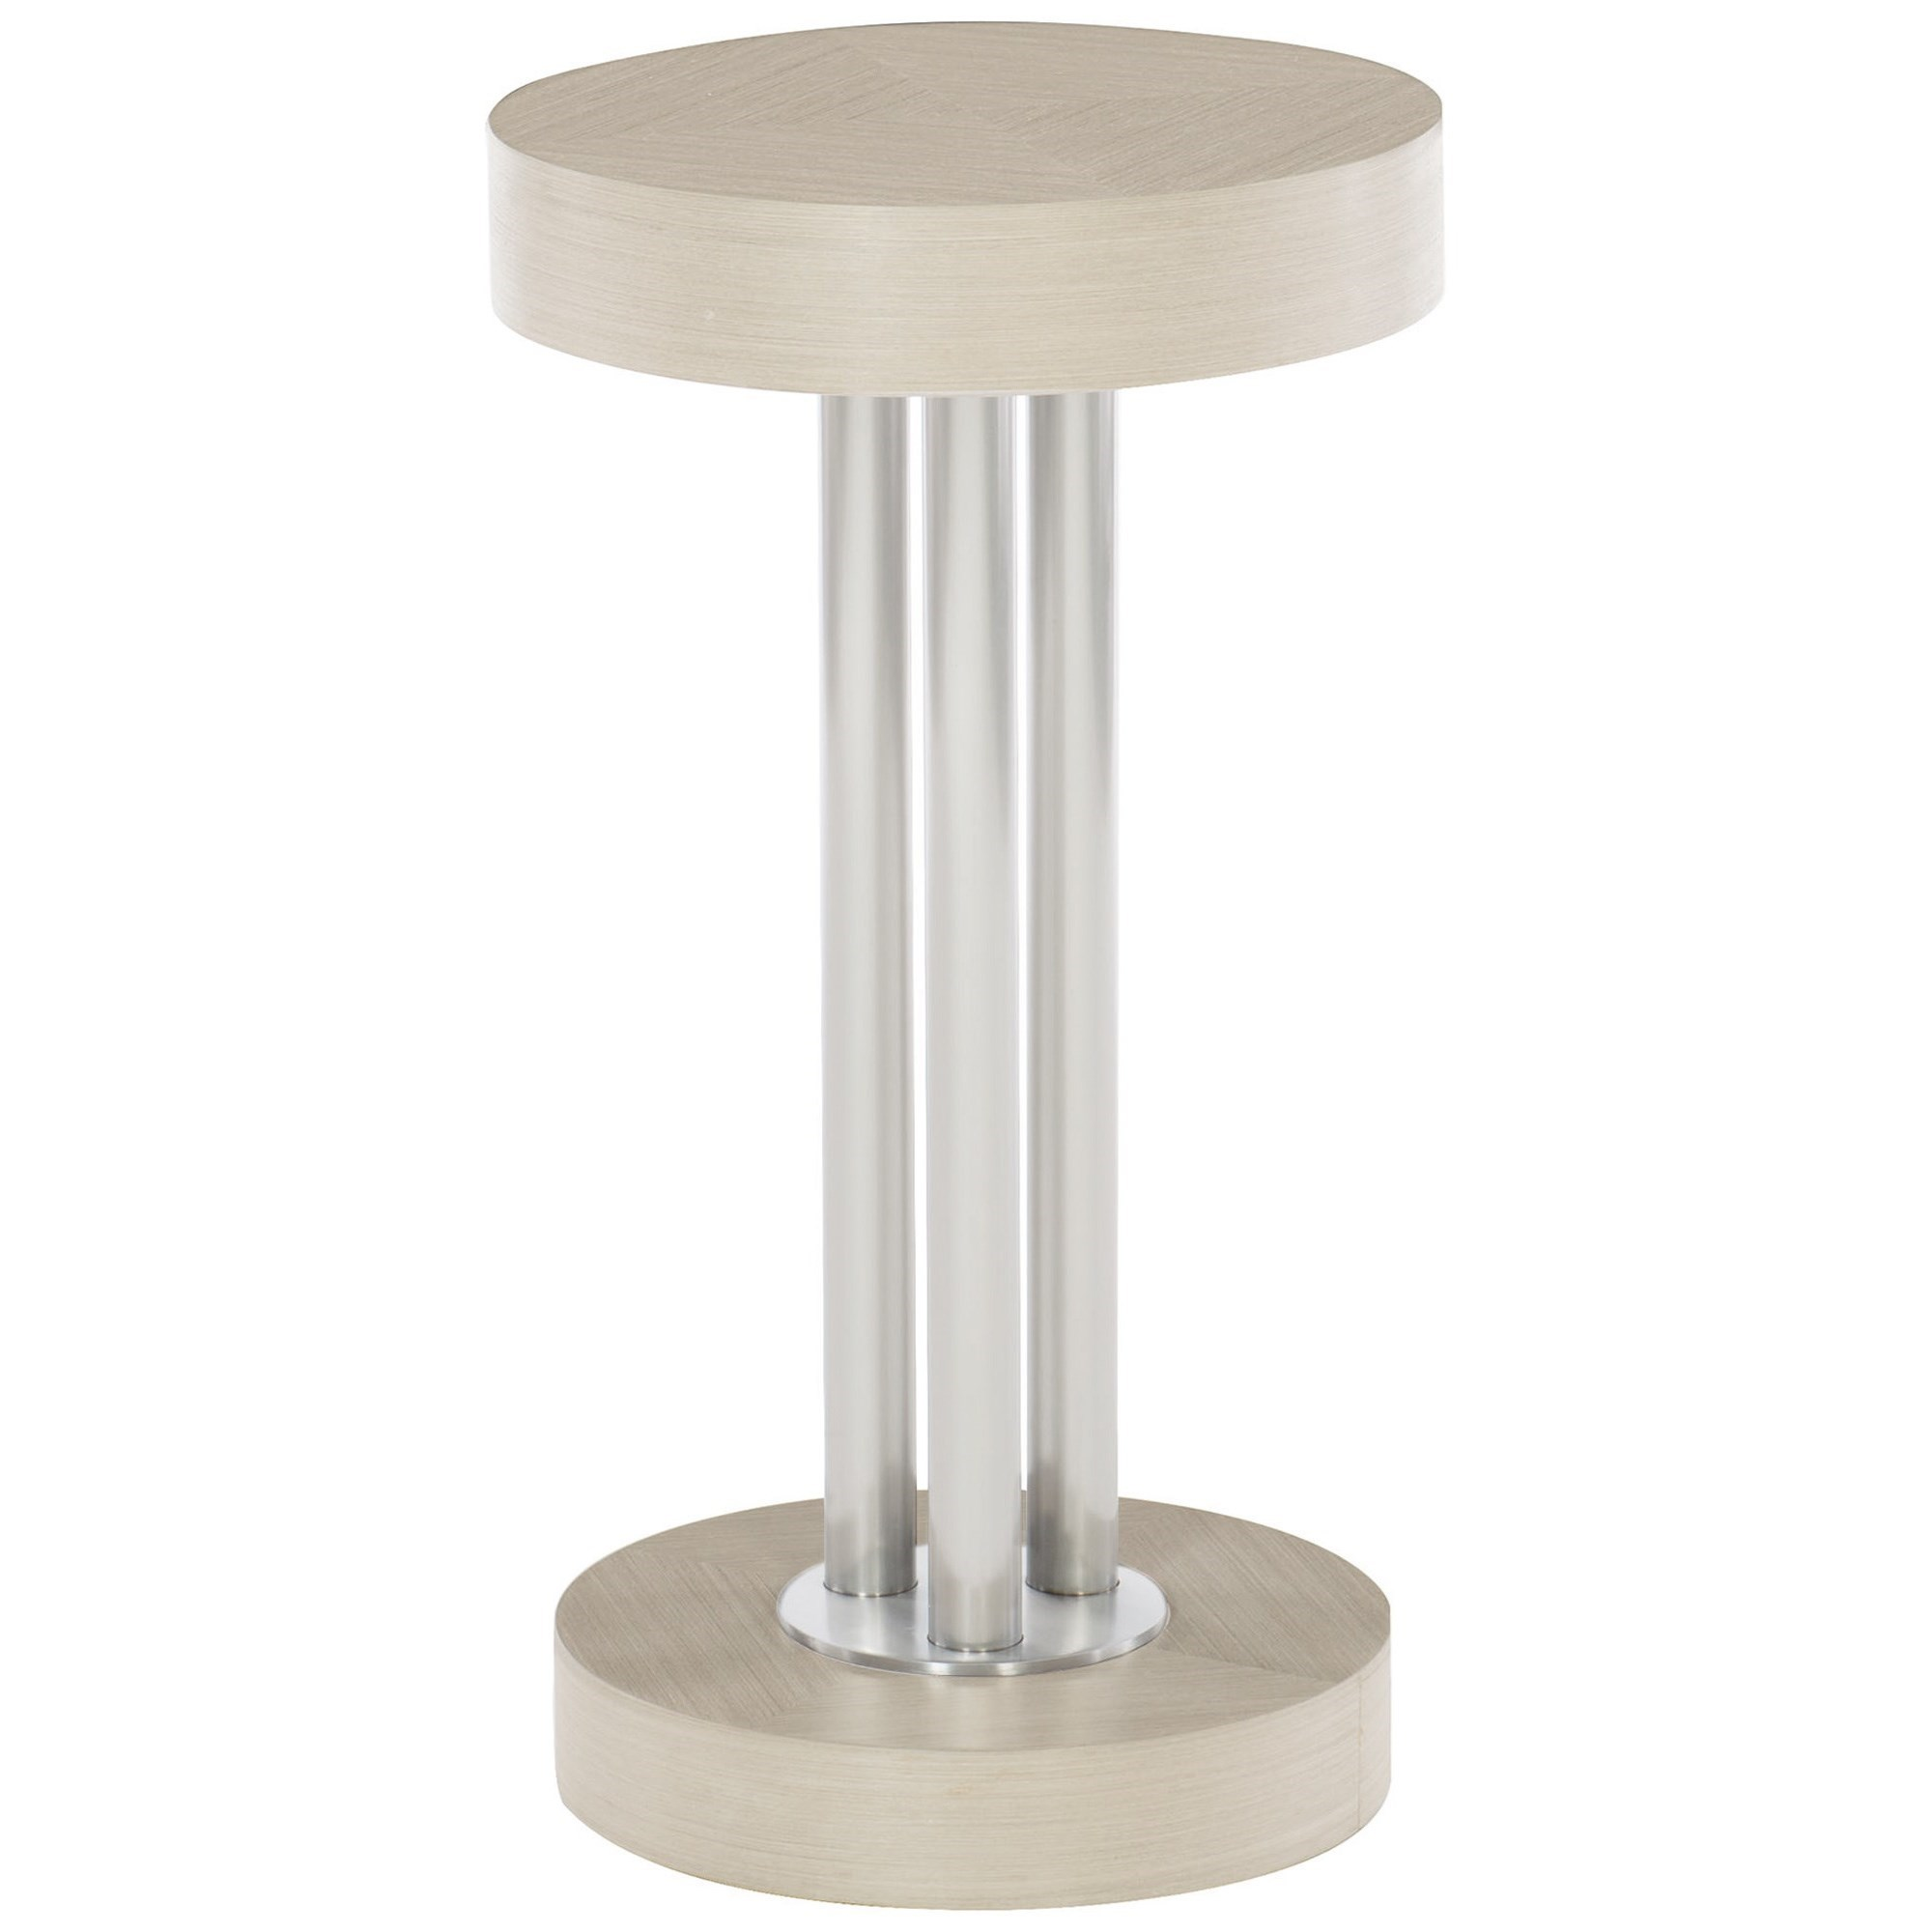 Axiom Round Chairside Table at Williams & Kay